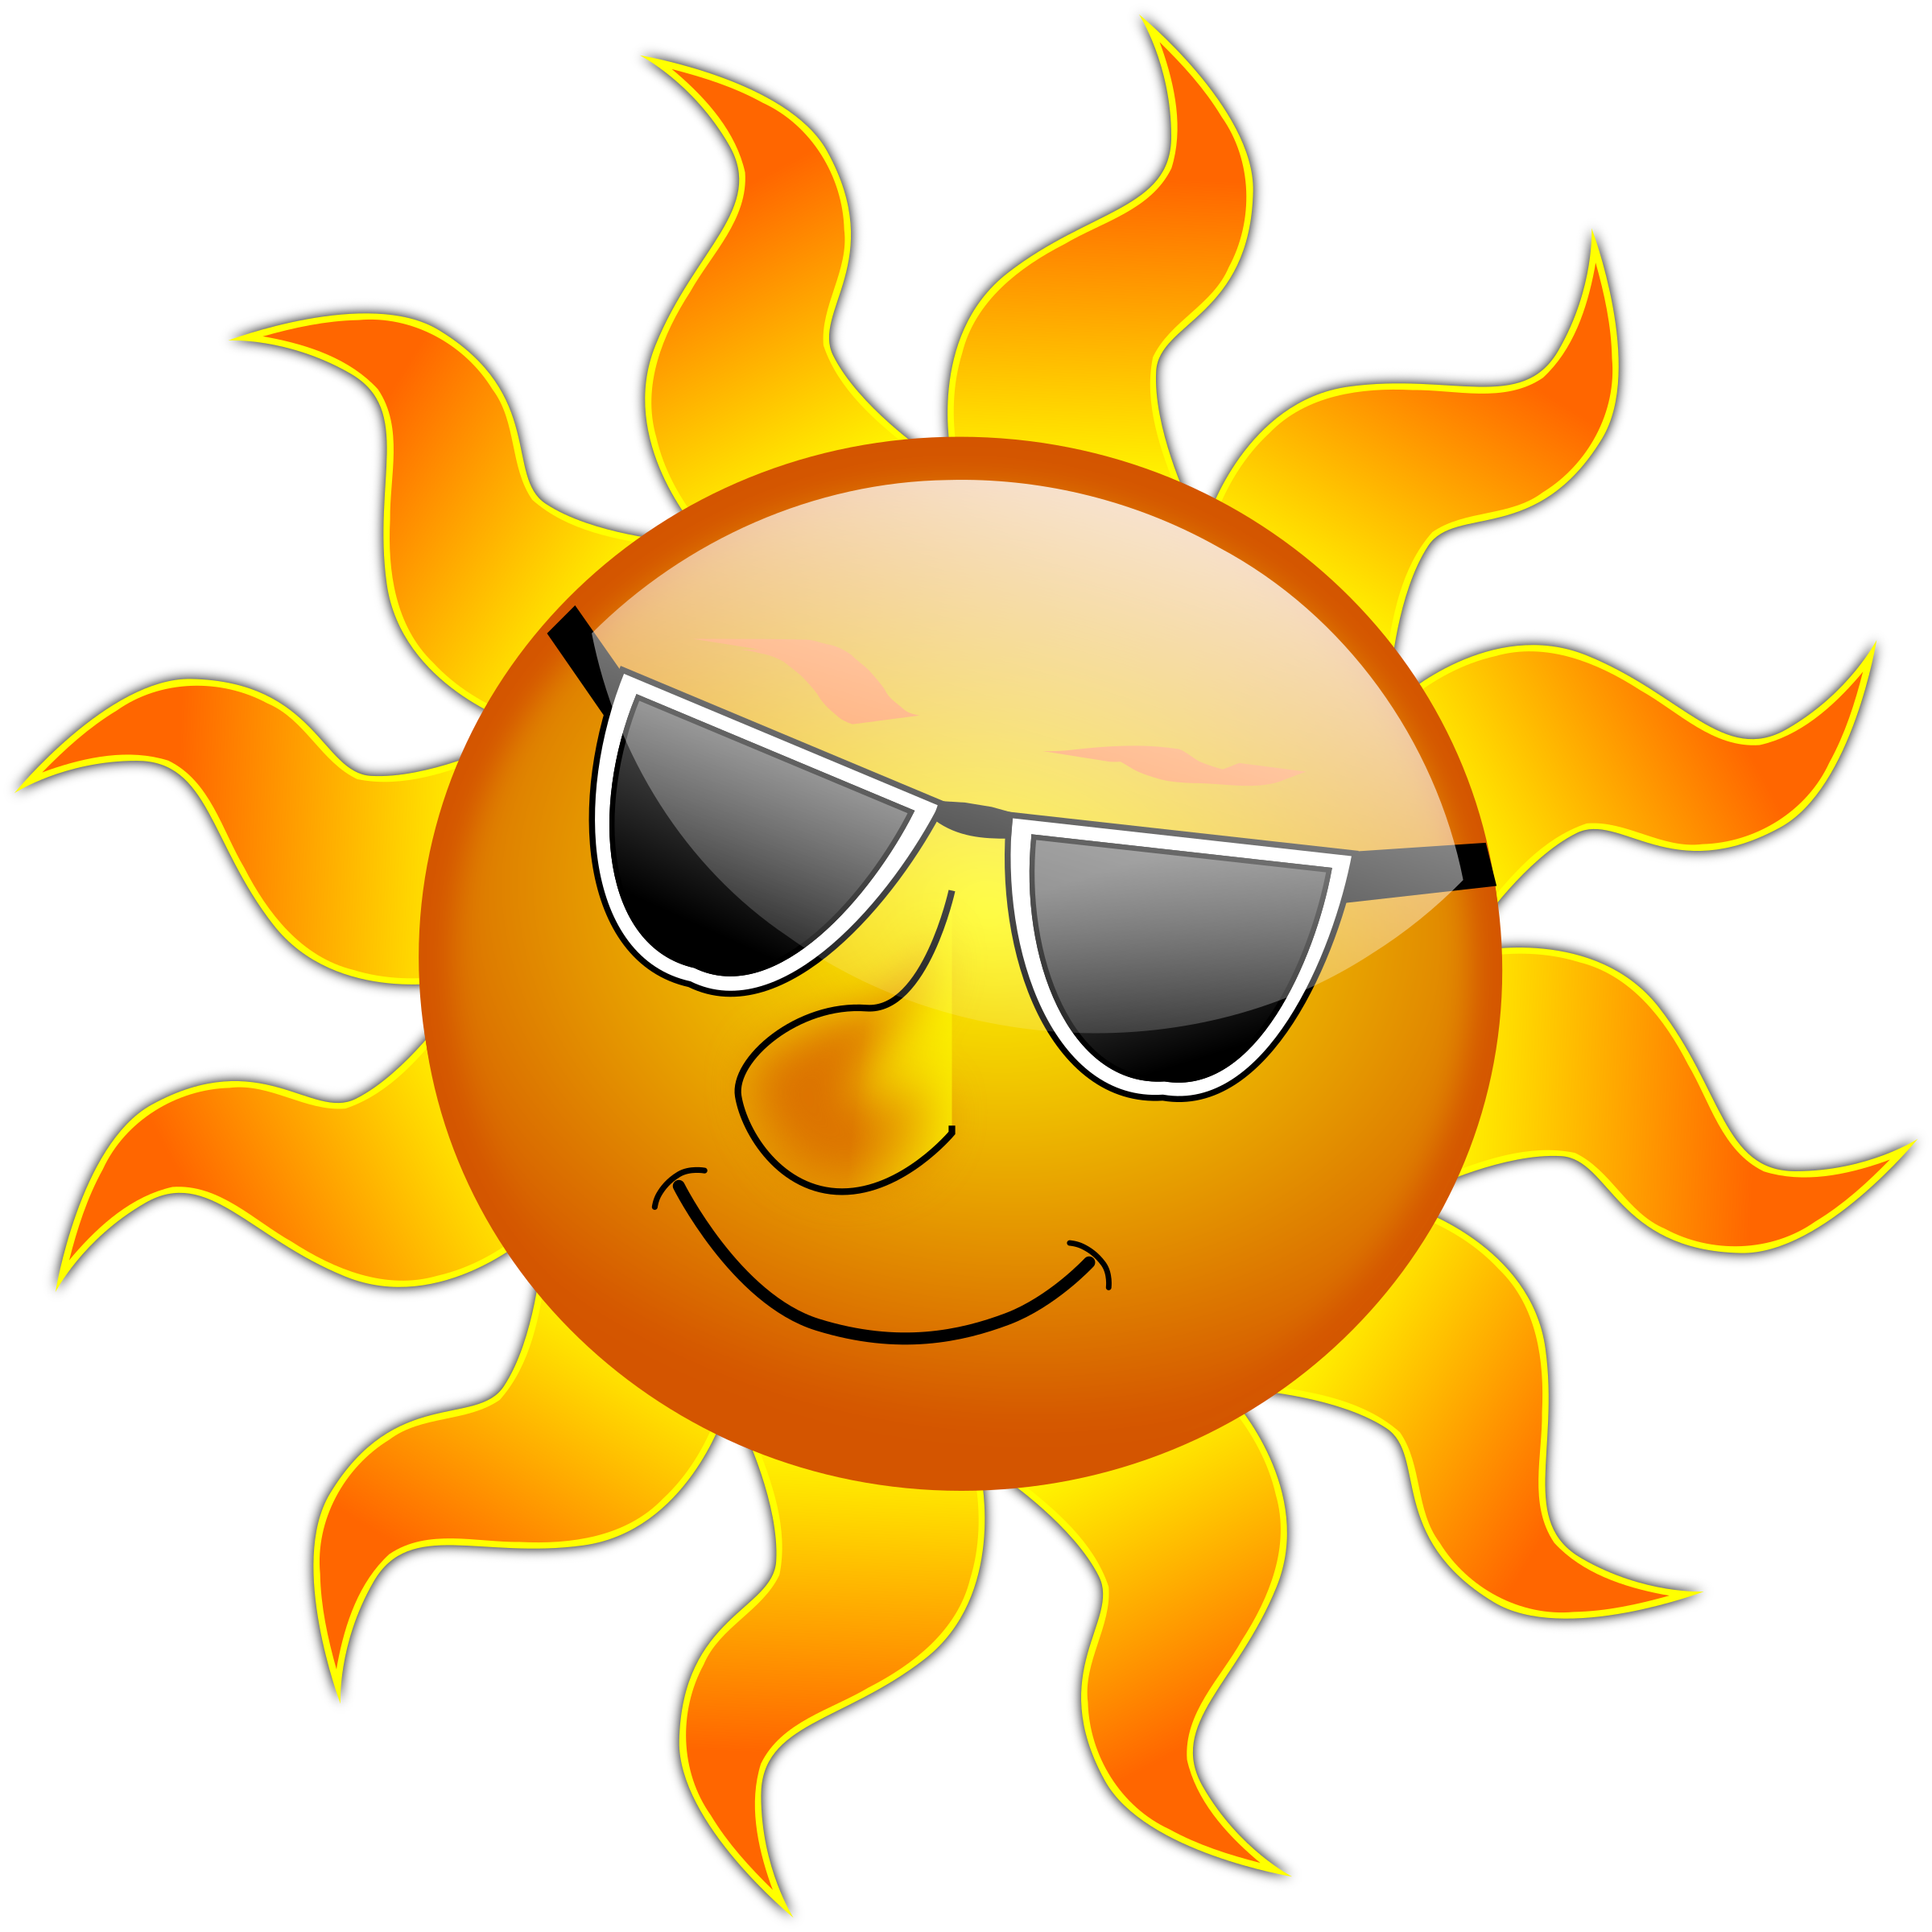 Transparent sunshine summer. Things stickers png sticker